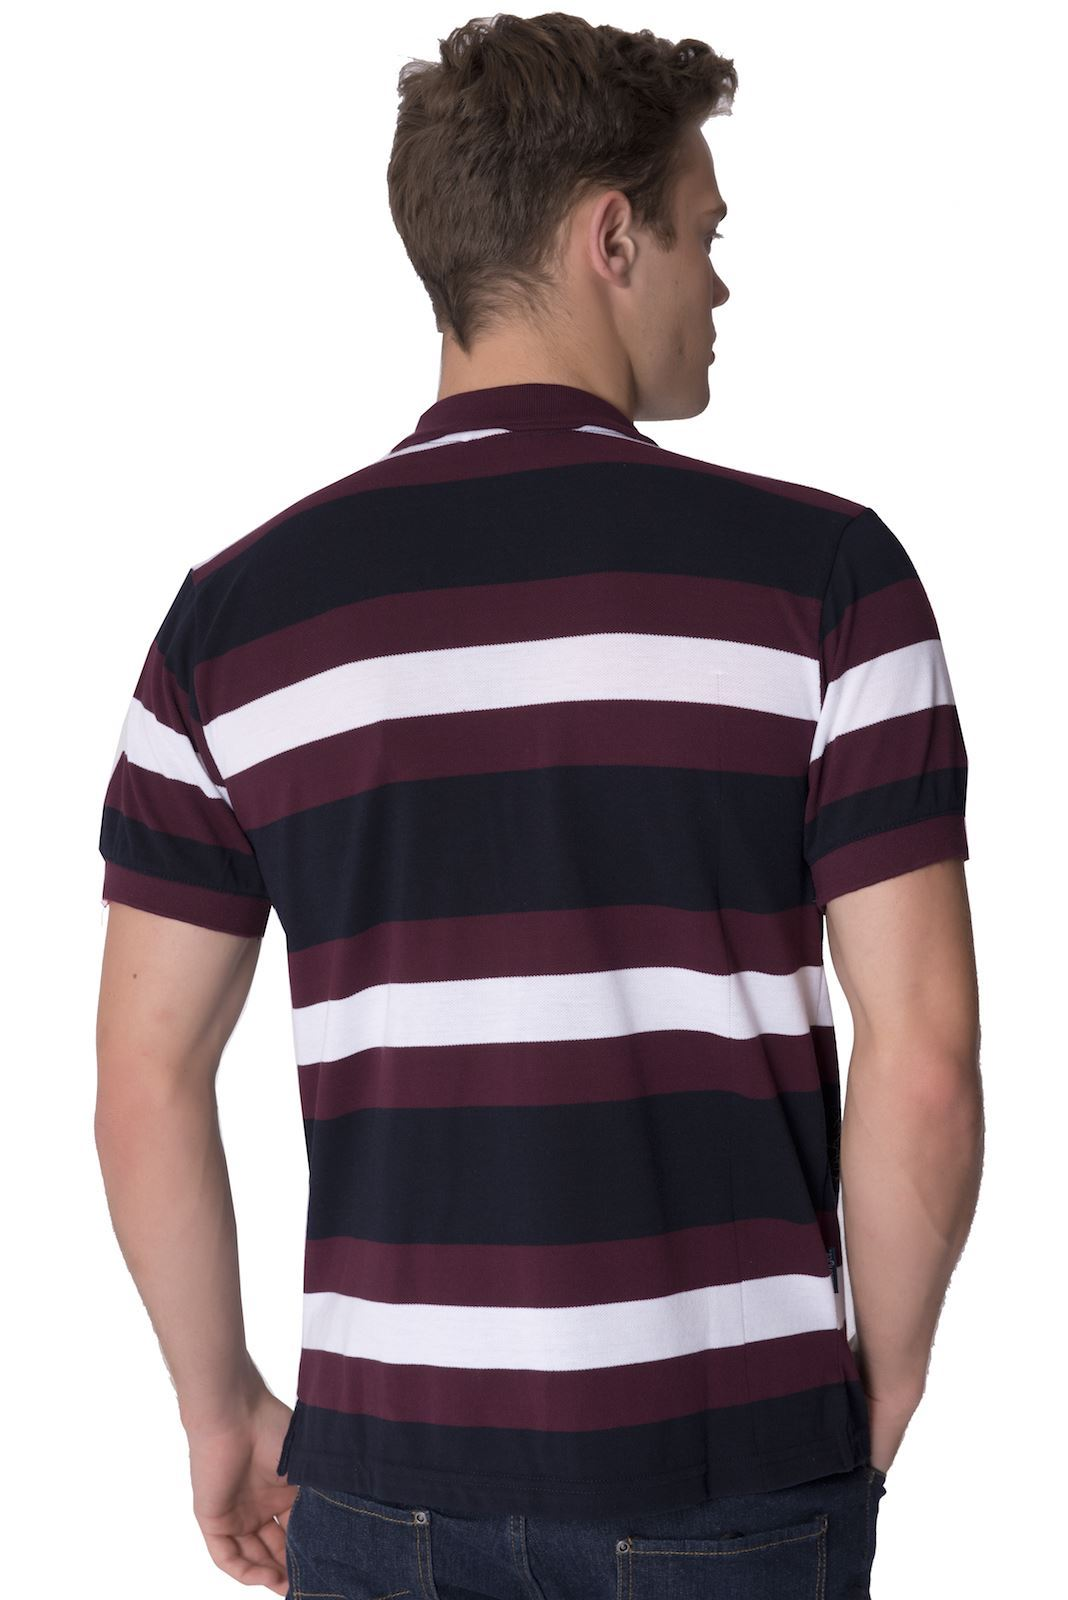 Slazenger mens striped branded polo shirt short sleeved for Branded polo t shirts